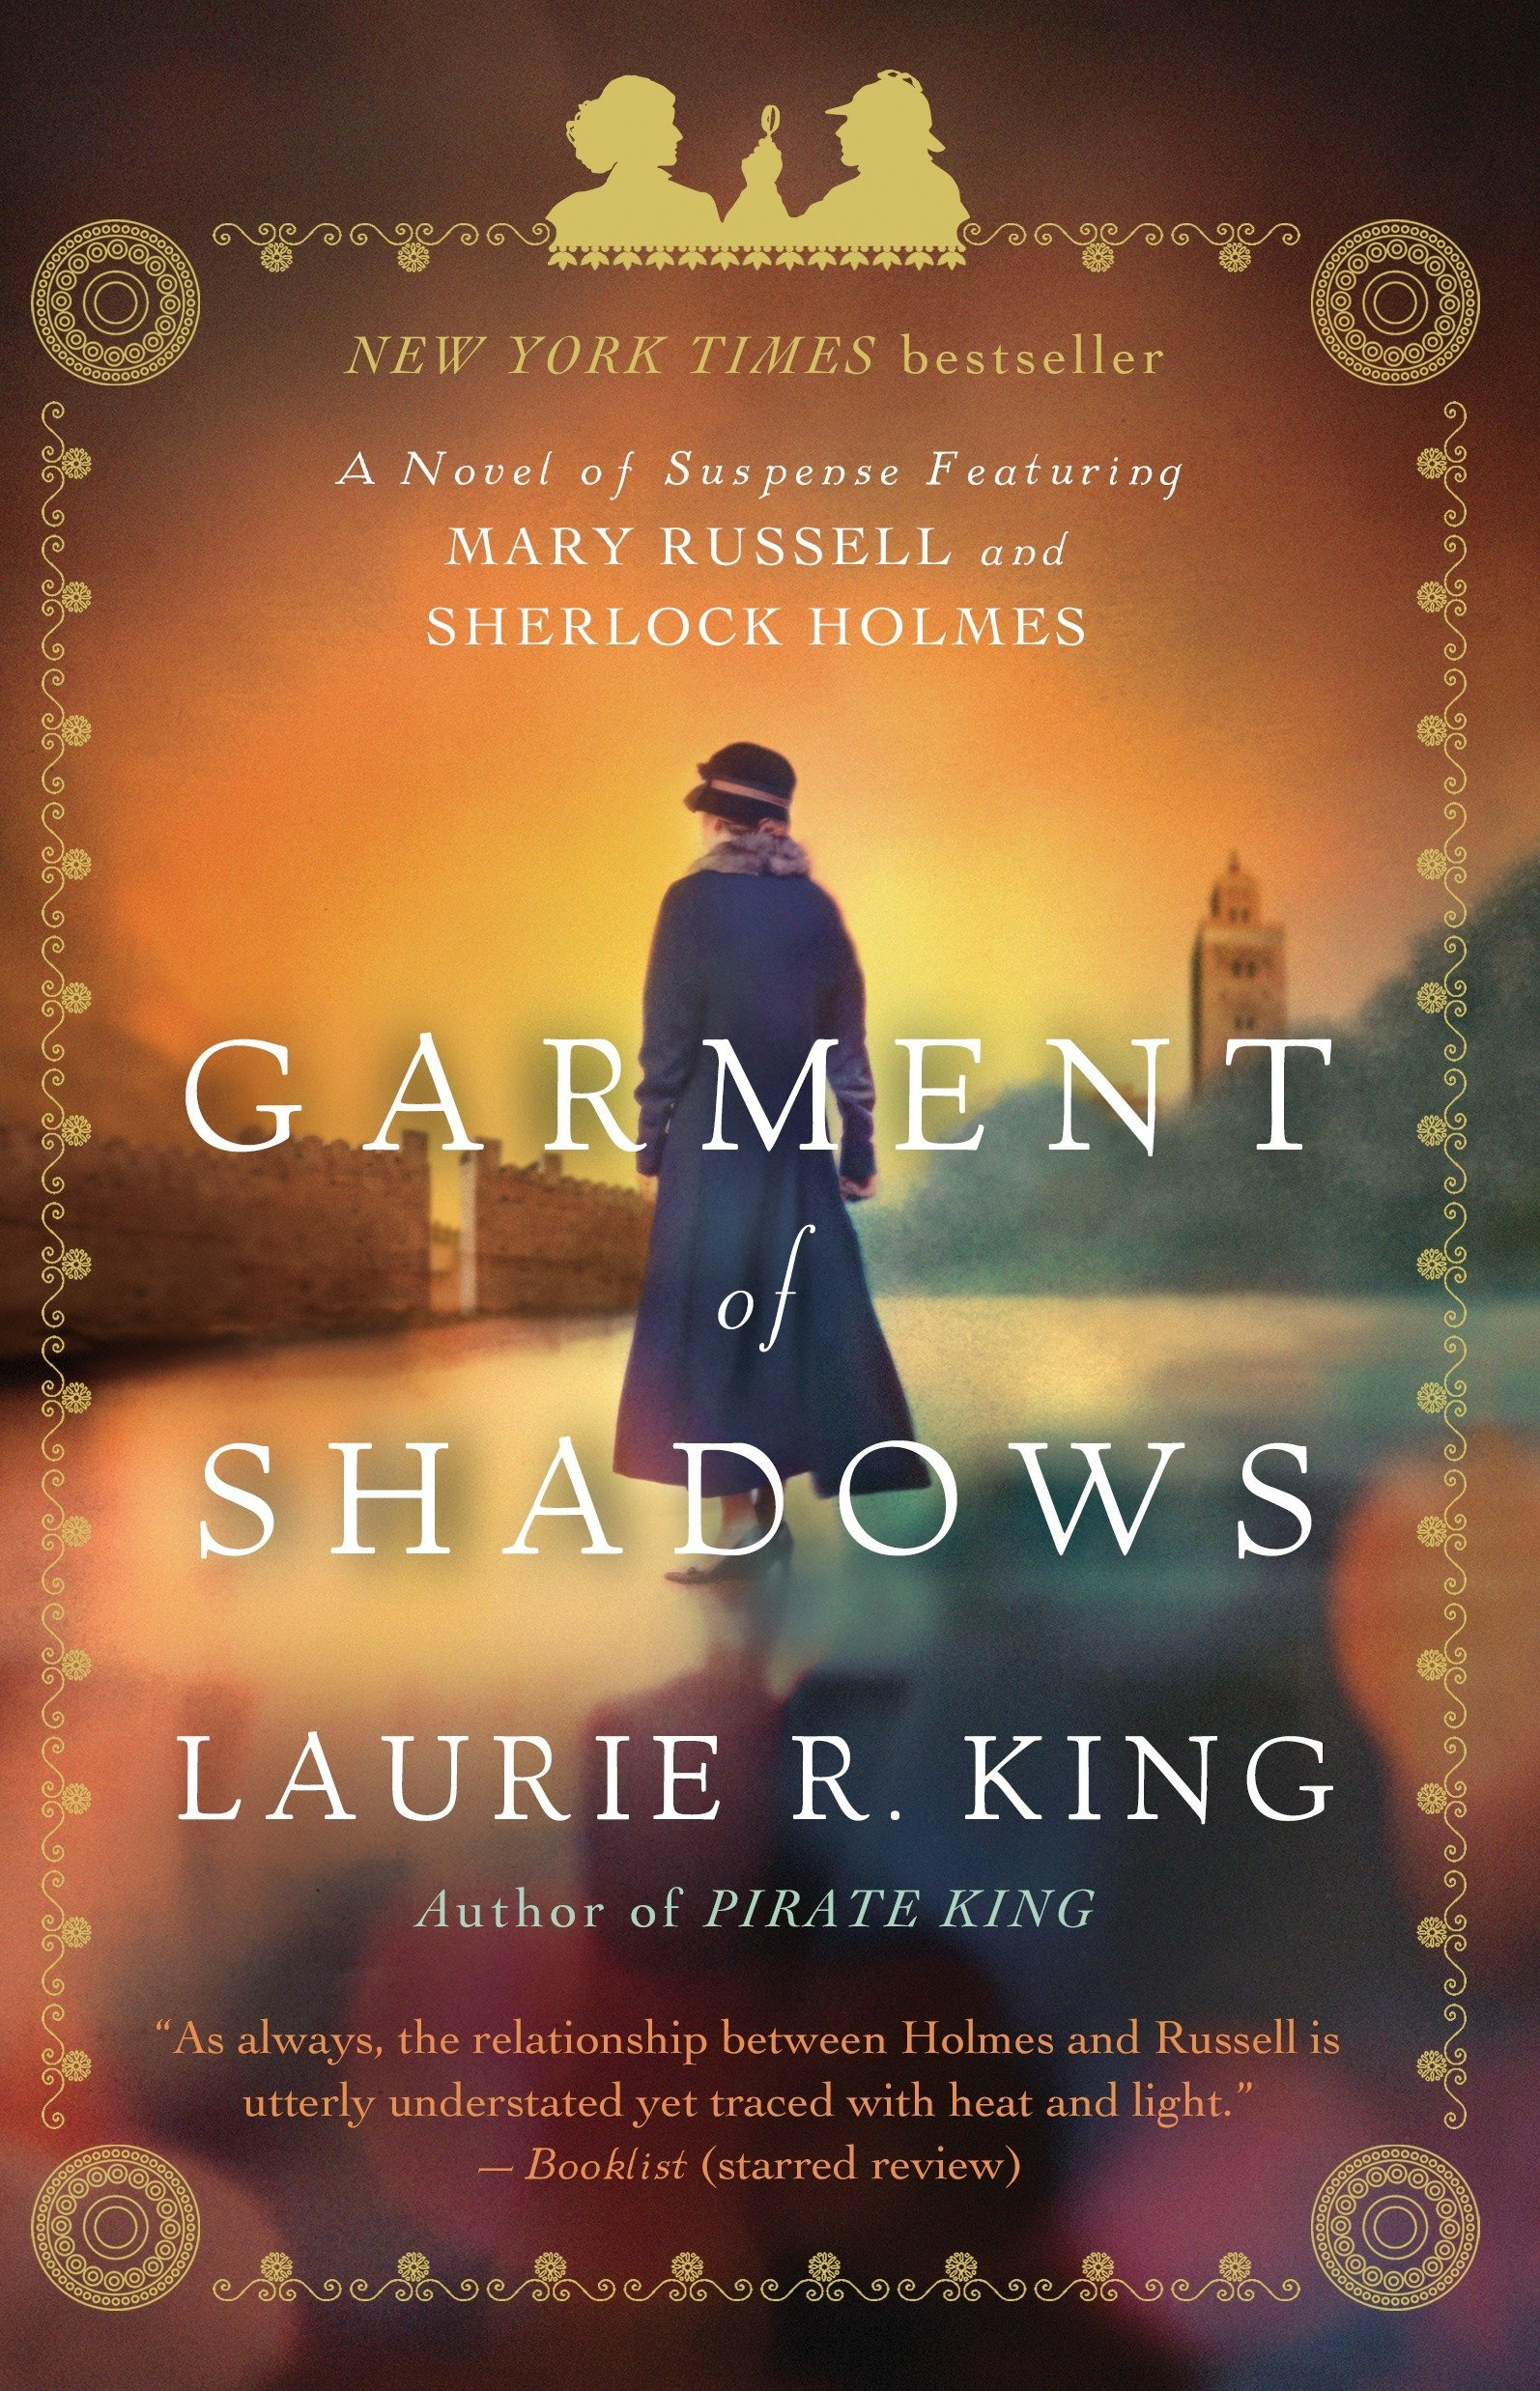 Garment Of Shadows A Novel Of Suspense Featuring Mary Russell And Sherlock Holmes King Laurie R 9780553386769 Amazon Com Books